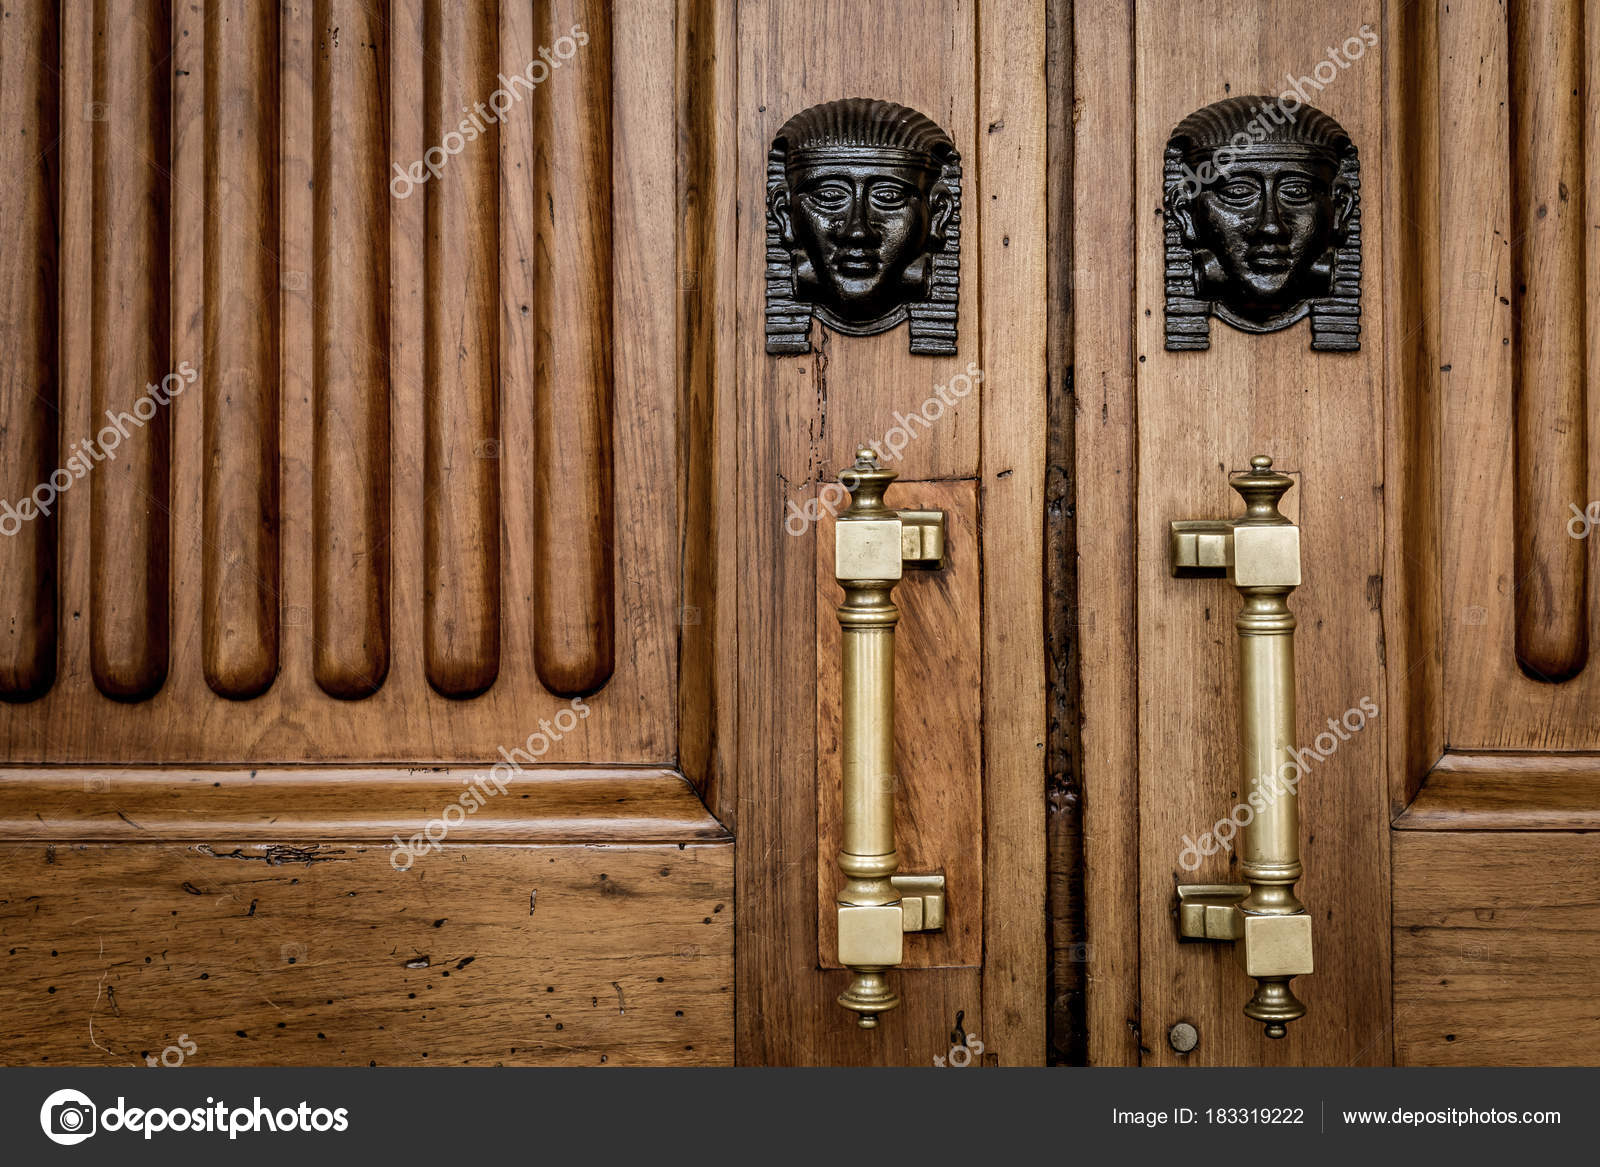 Detail of two bronze Sphinx heads on an old wooden door - around 100 years old Italian palace in North Italy u2014 Photo by perseomedusa & Sphinx heads entrance on wooden door u2014 Stock Photo © perseomedusa ...